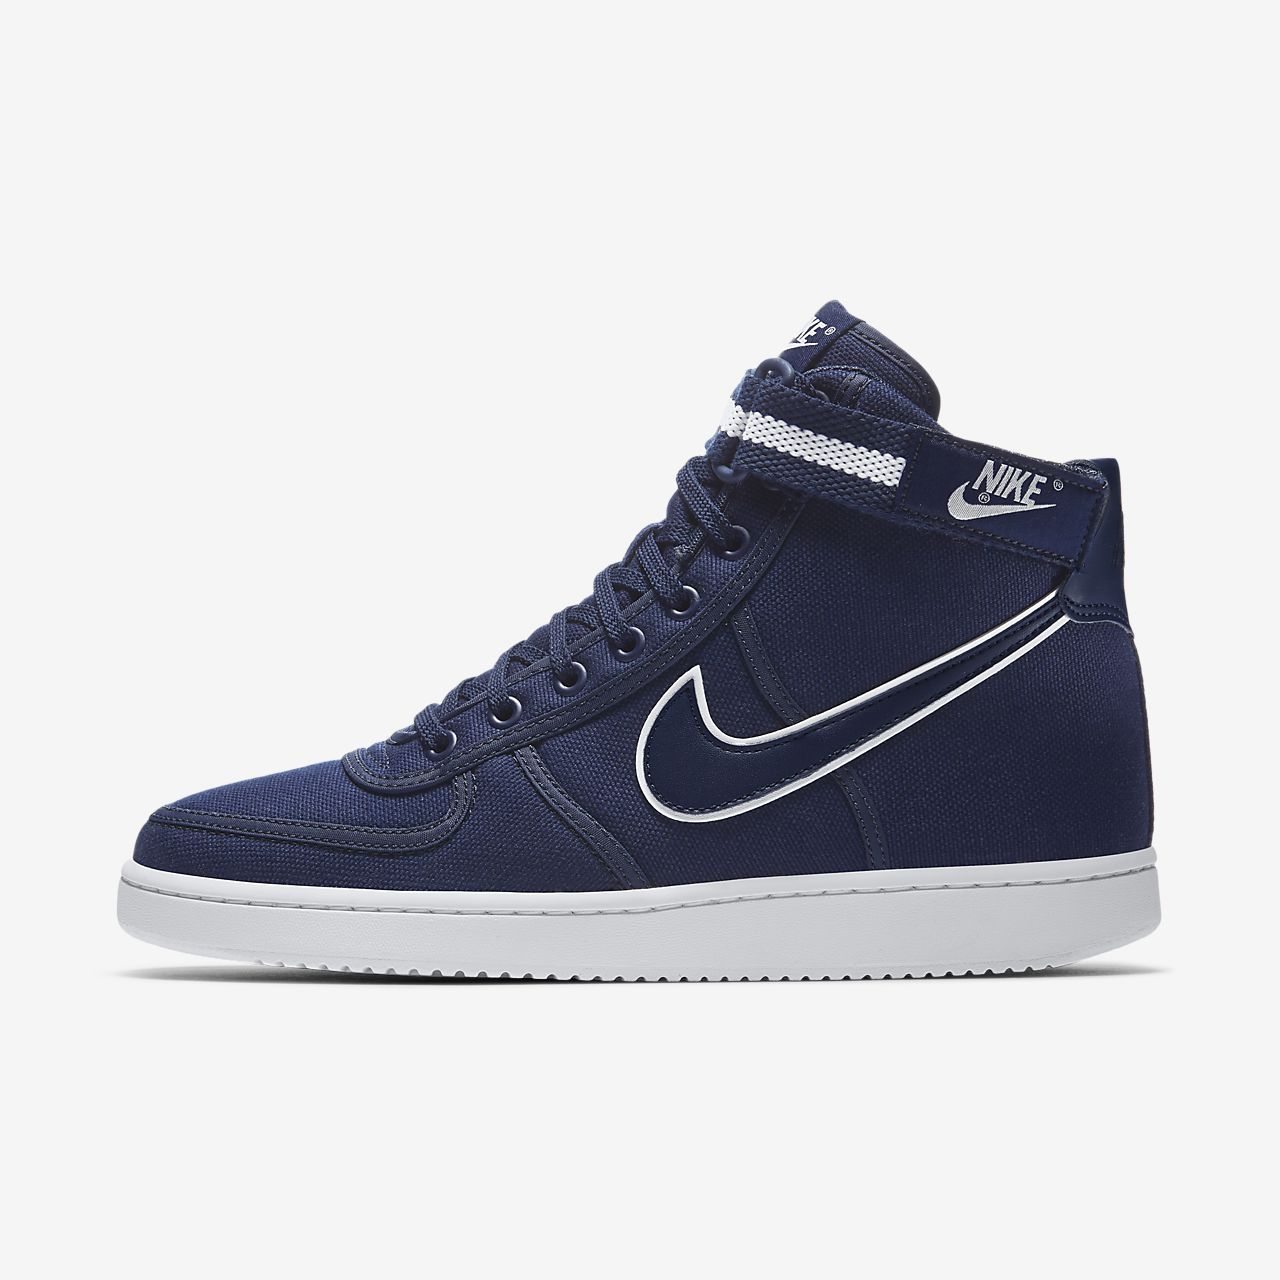 ... Nike Vandal High Supreme Men's Shoe